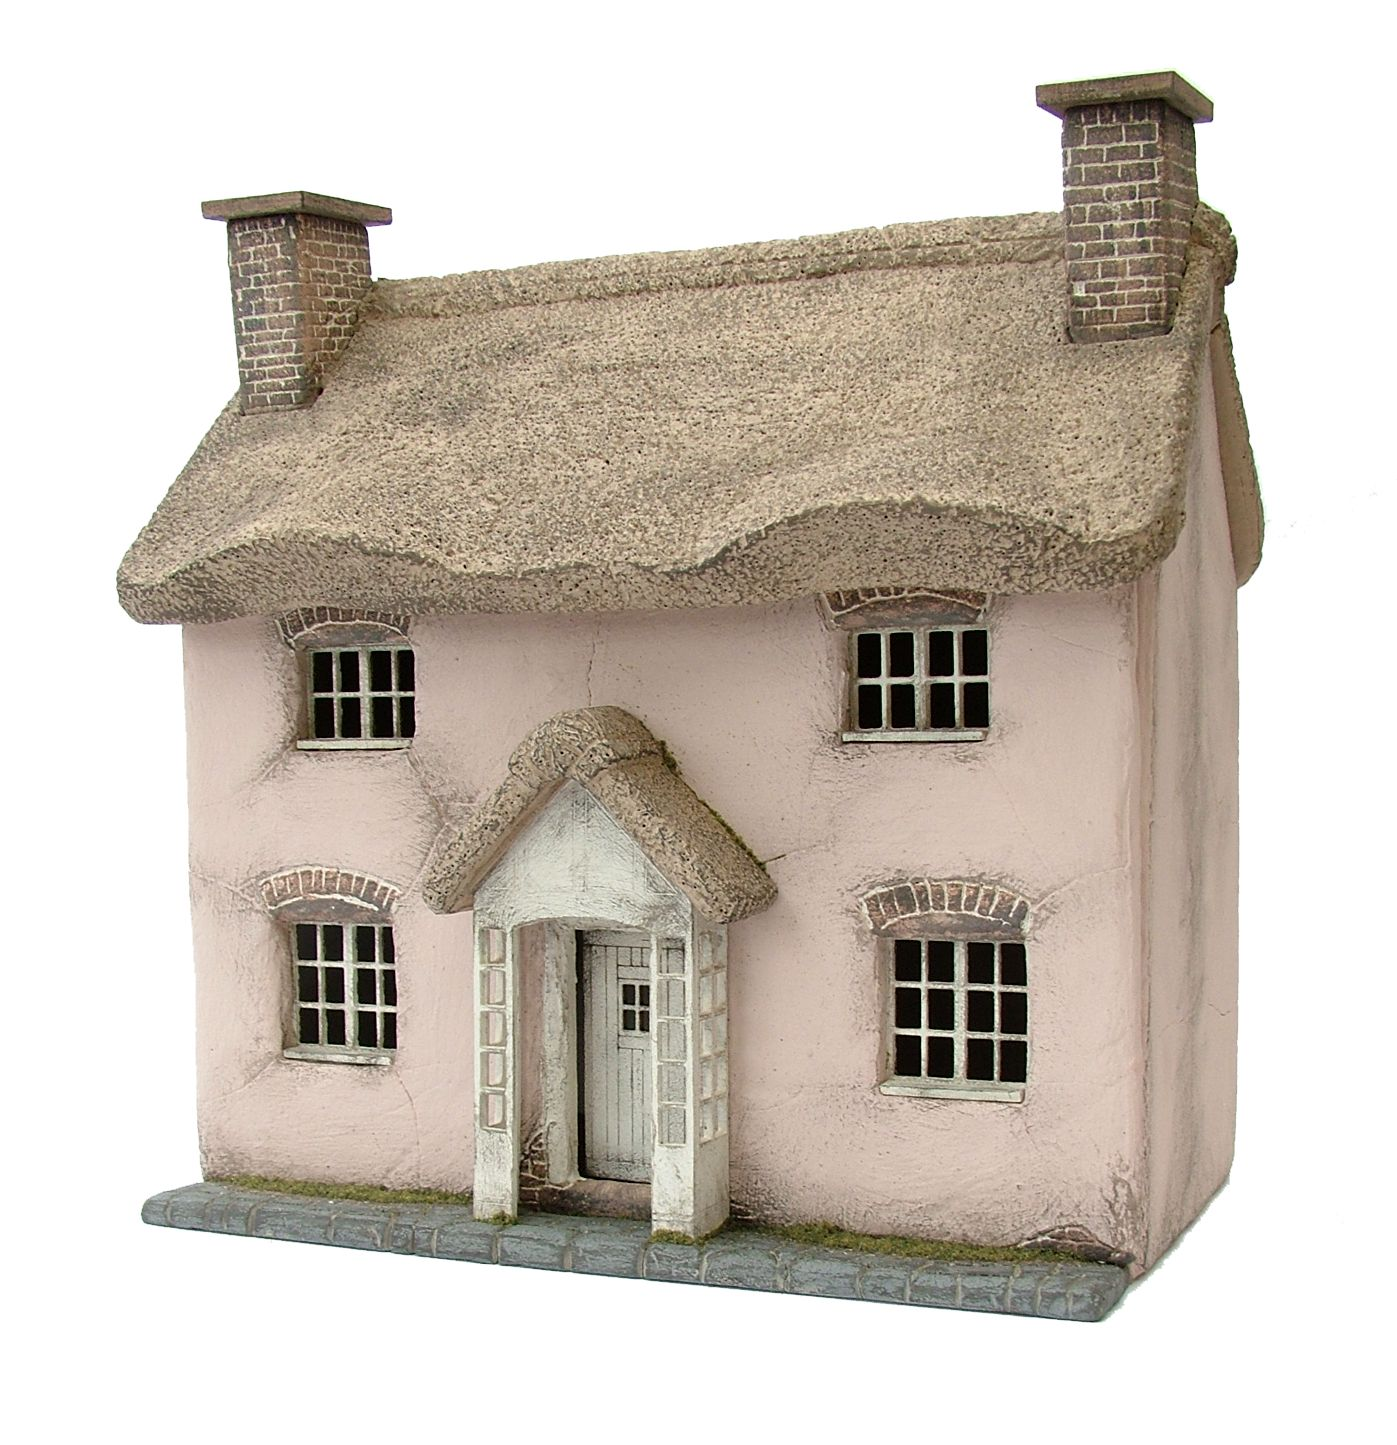 blaise your houses vivid miniature products grow ideas cottage arts cottages thatched house